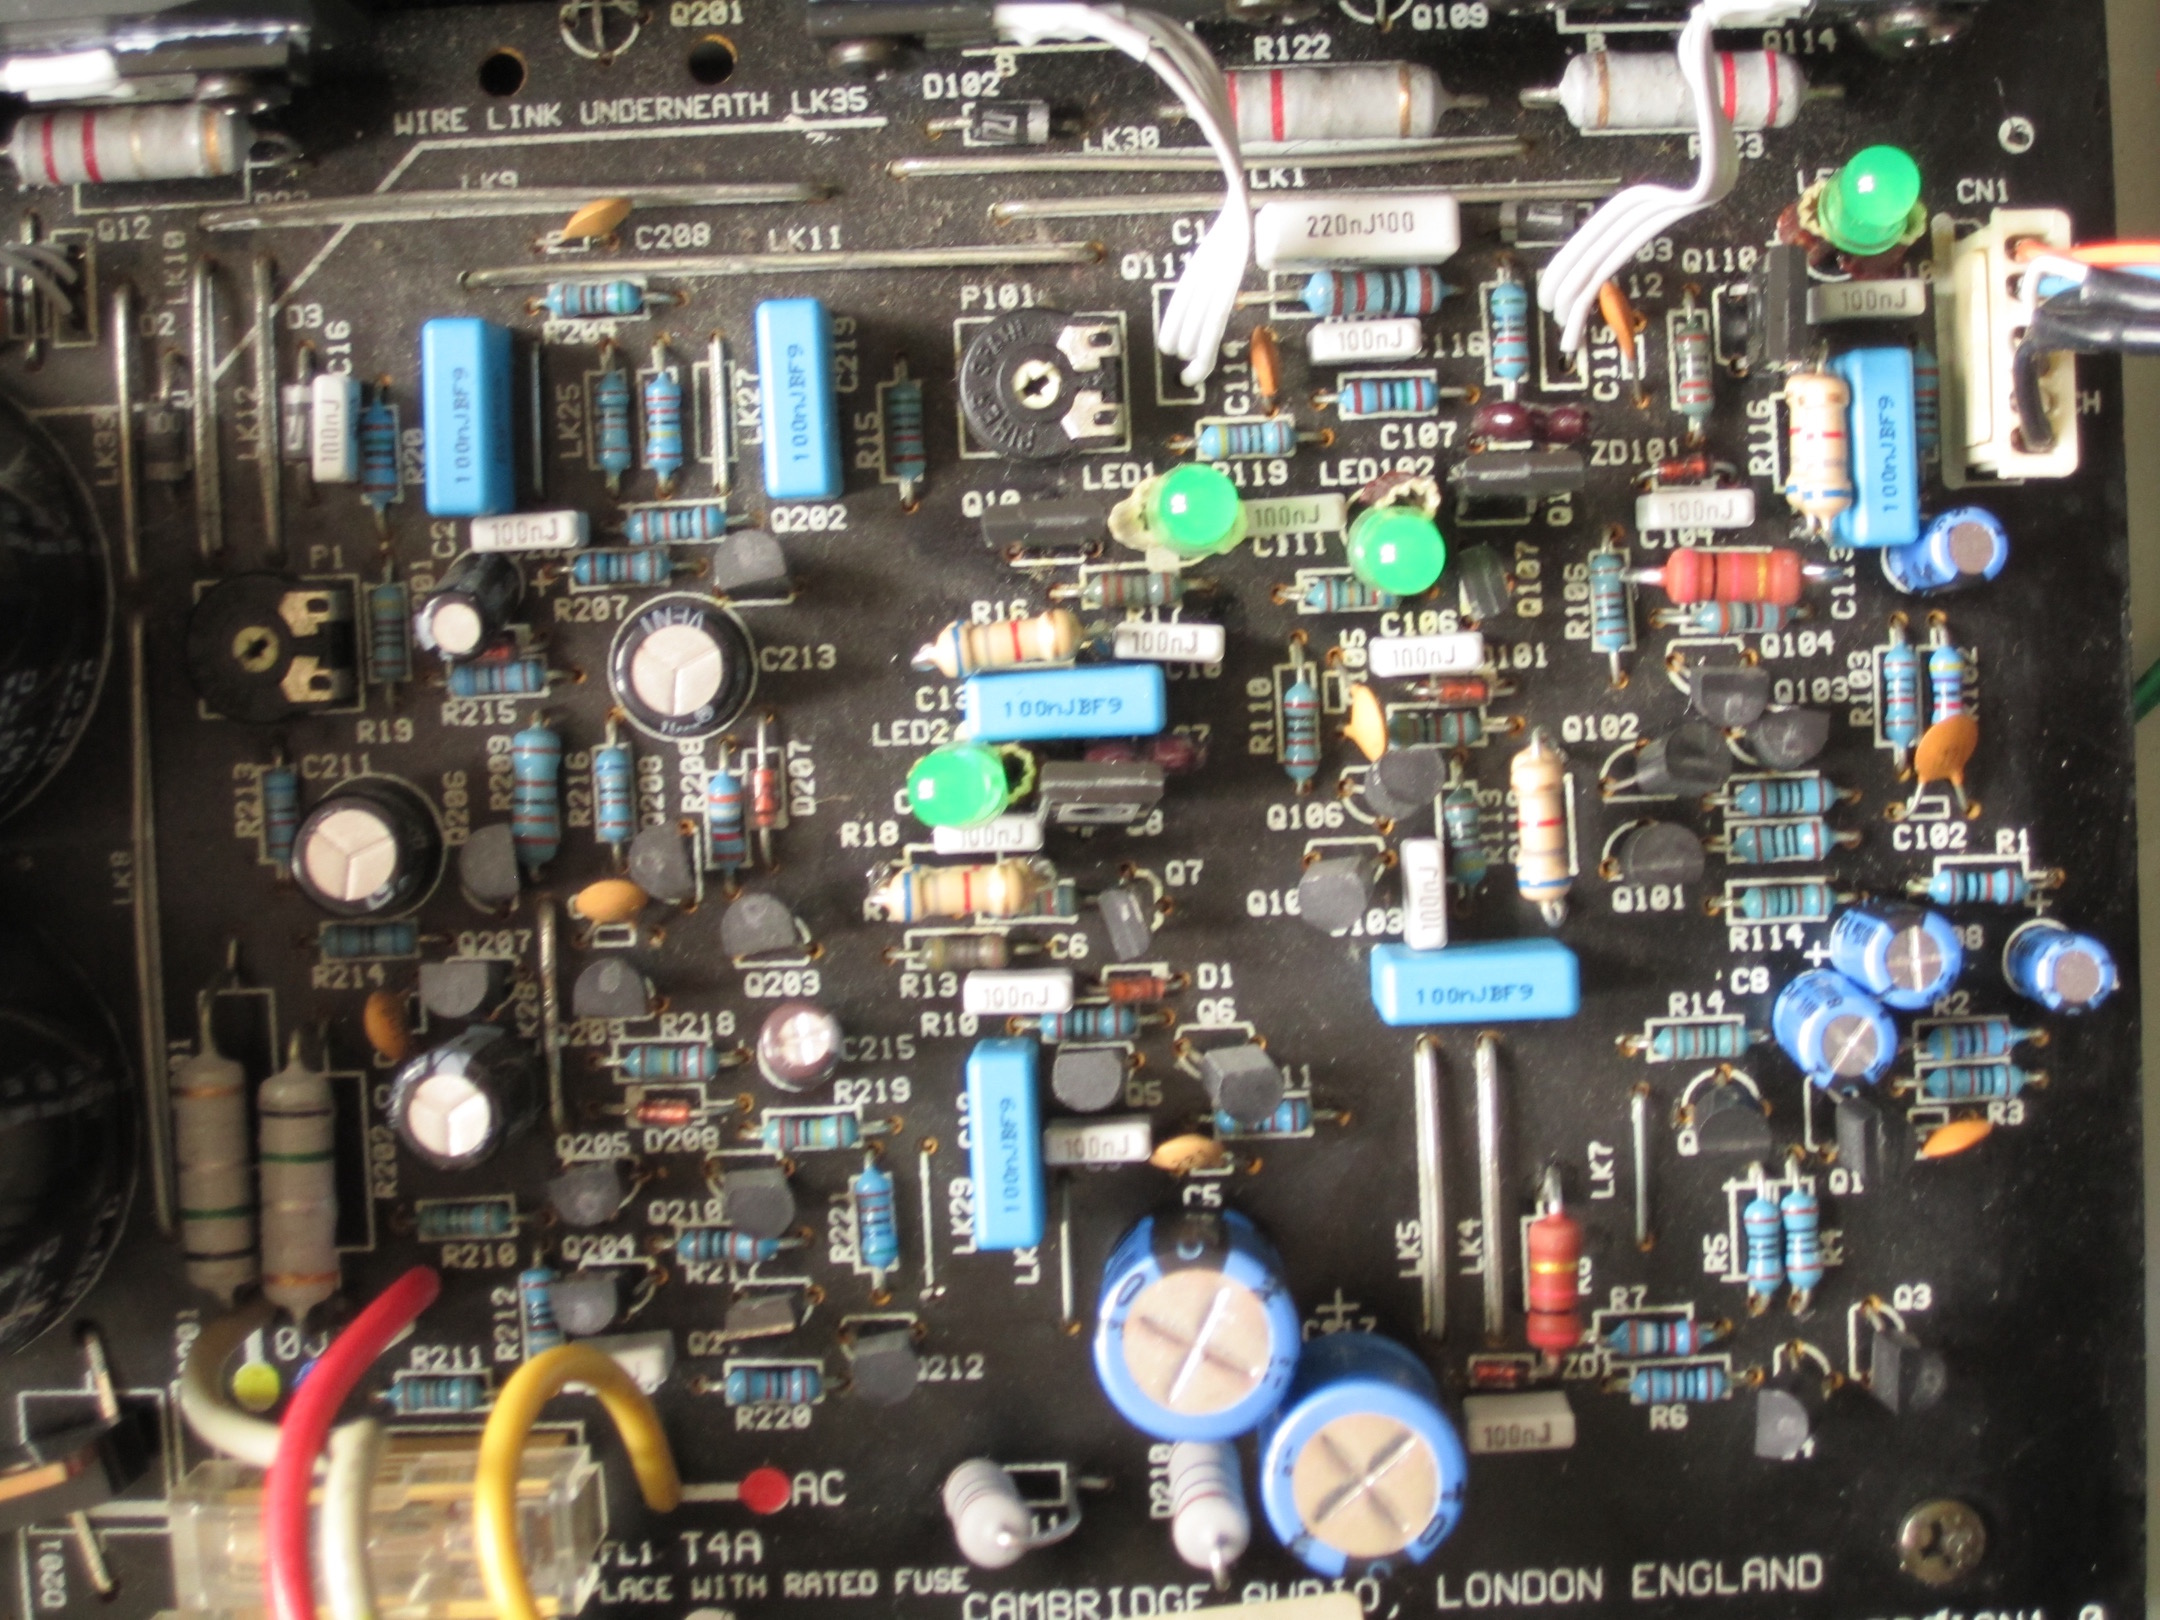 Diyaudio Solid State Power Amps Circuits 8085 Projects Blog Archive A Digital Timer Circuit Restored And Modded Cambridge Audio A3i